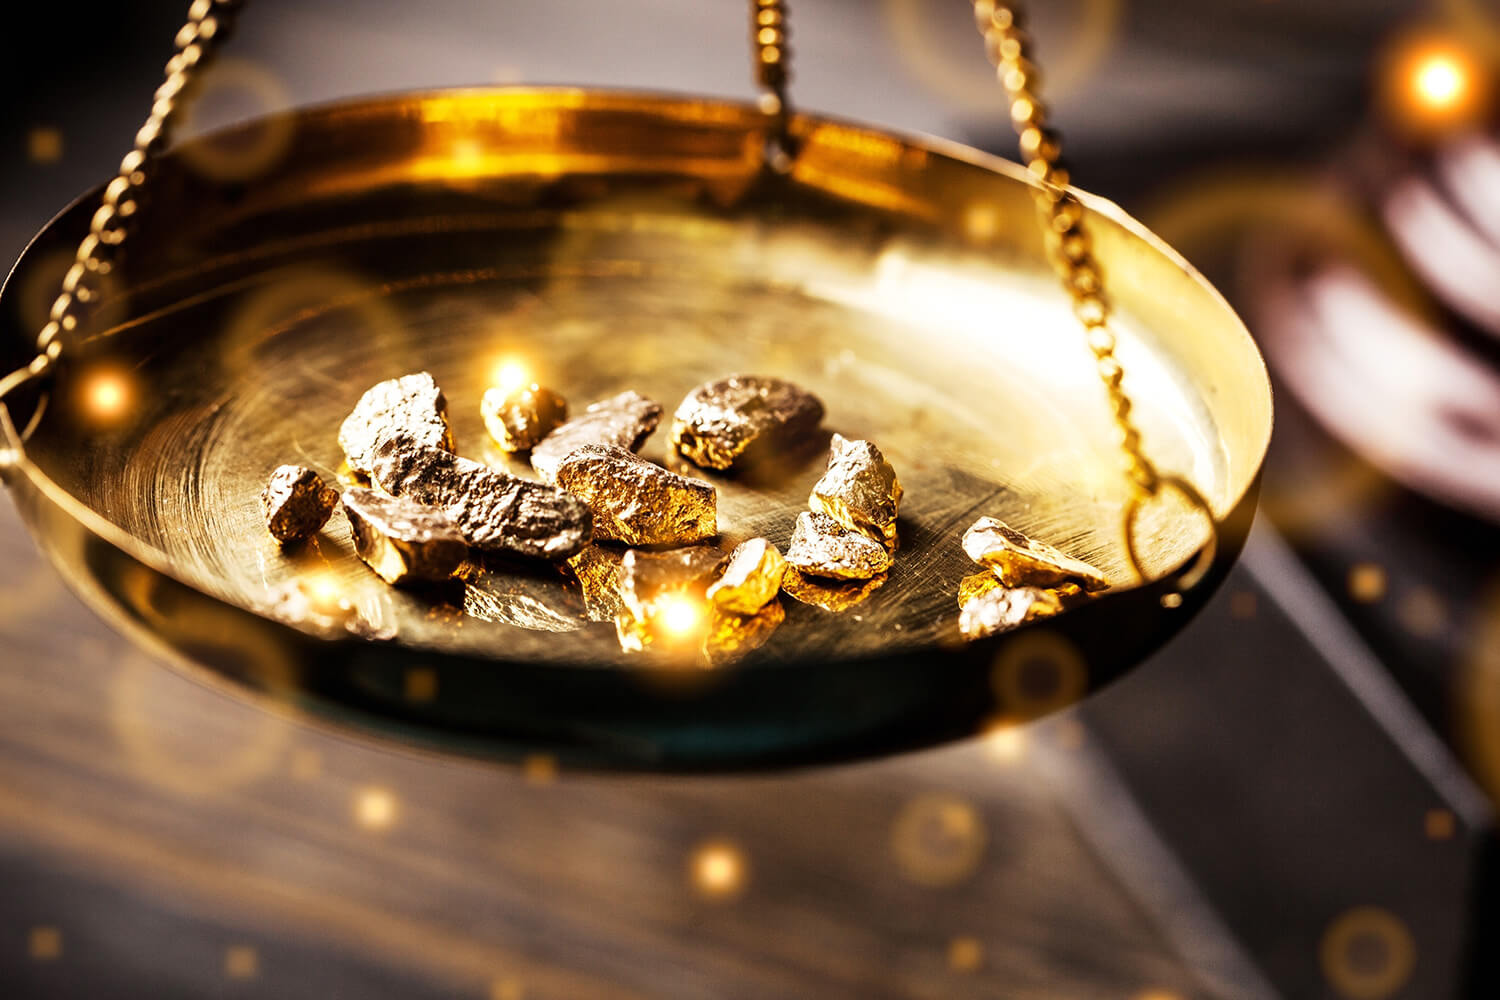 A scale weighing gold nuggets.